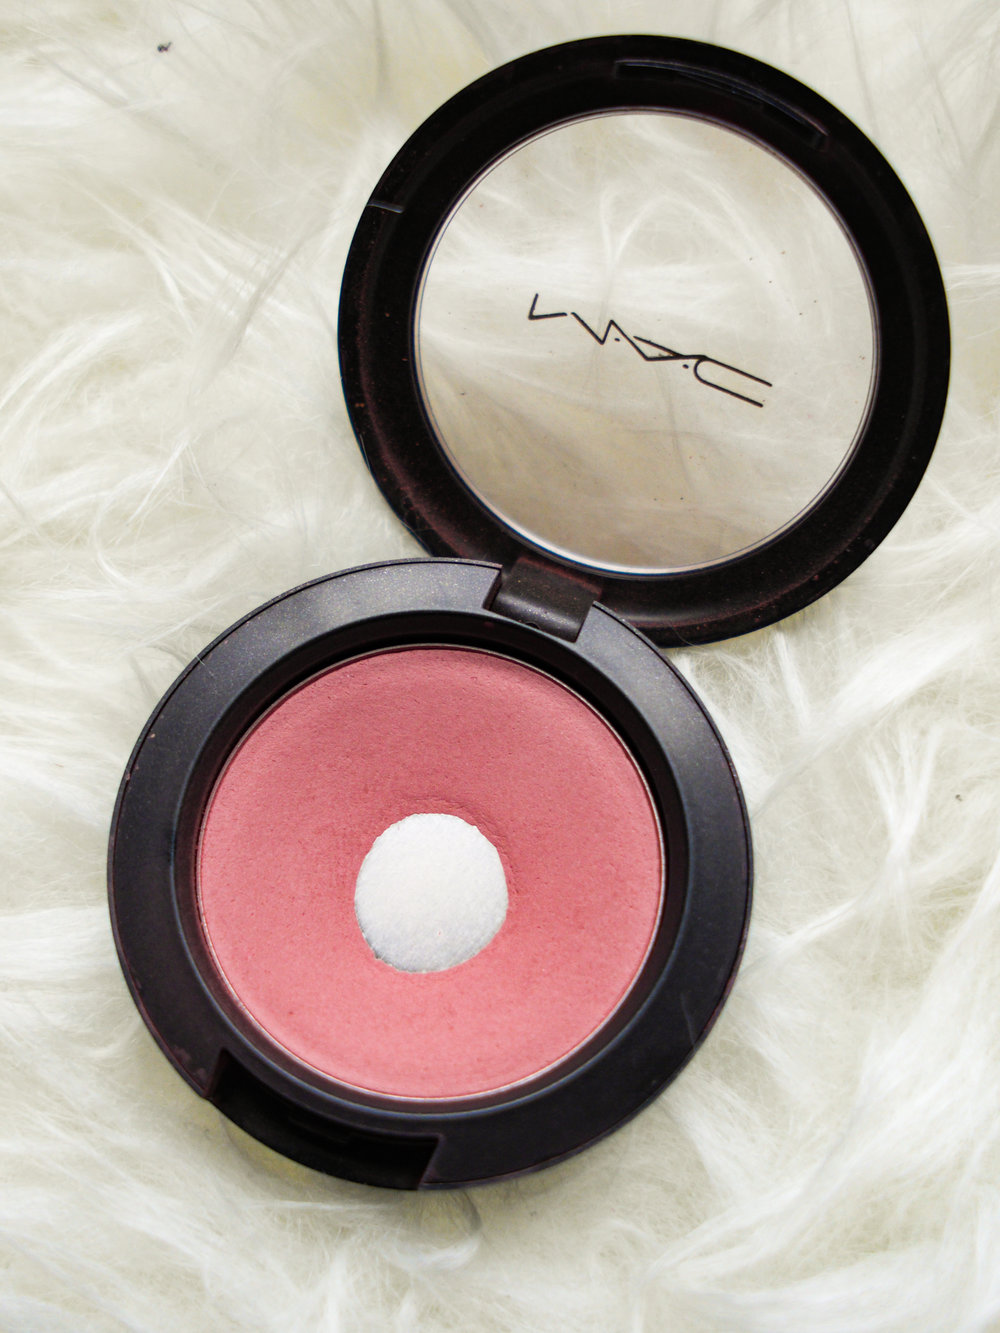 MAC Cosmetics blush in Blushbaby